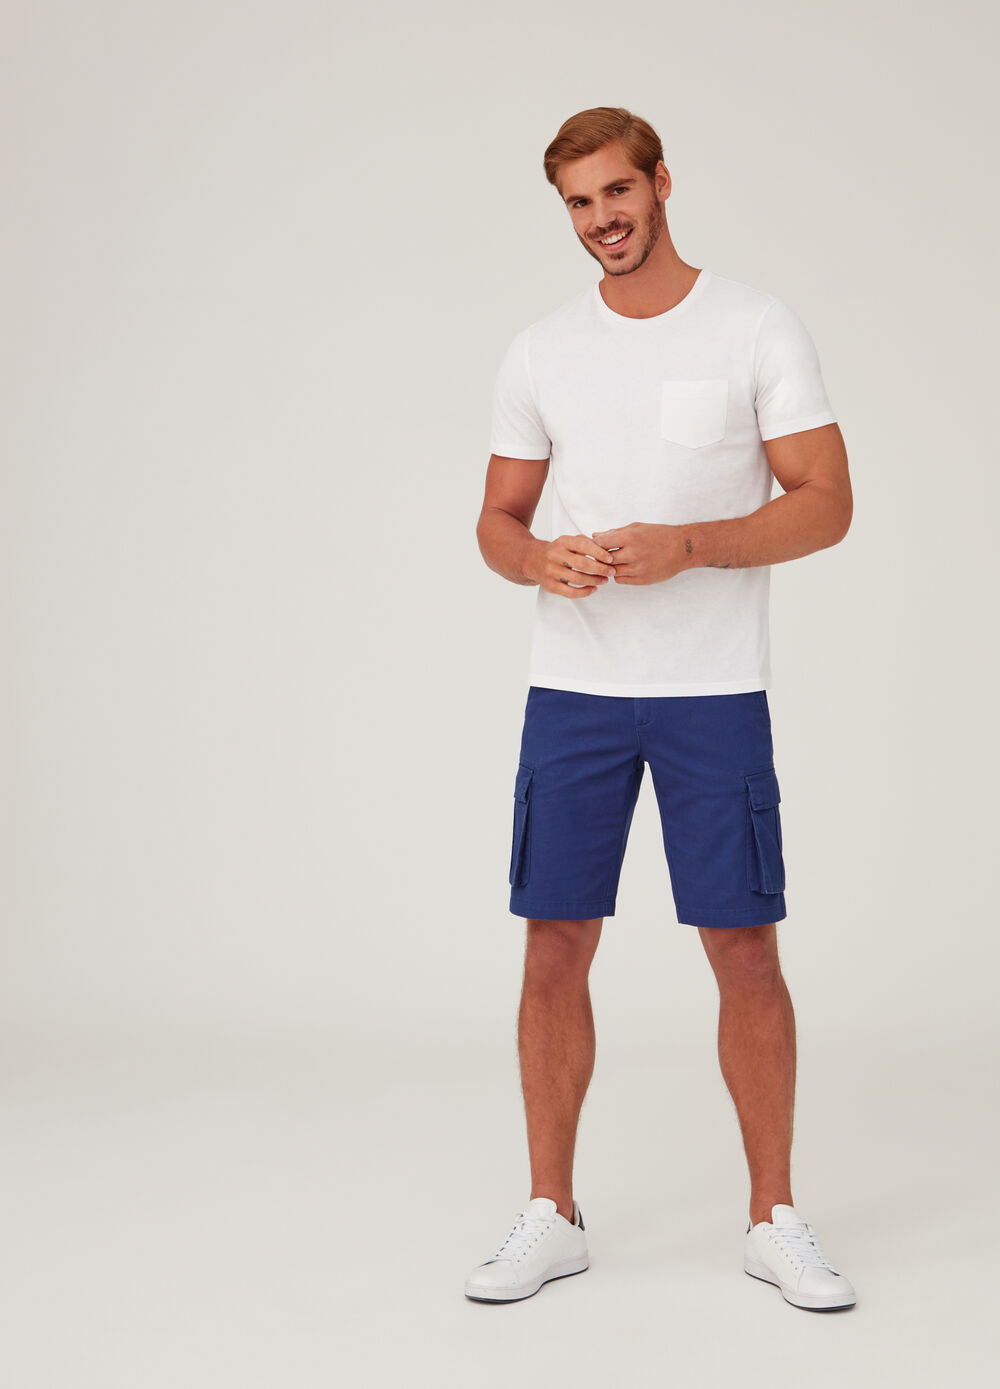 Shorts modelo cargo regular fit color liso